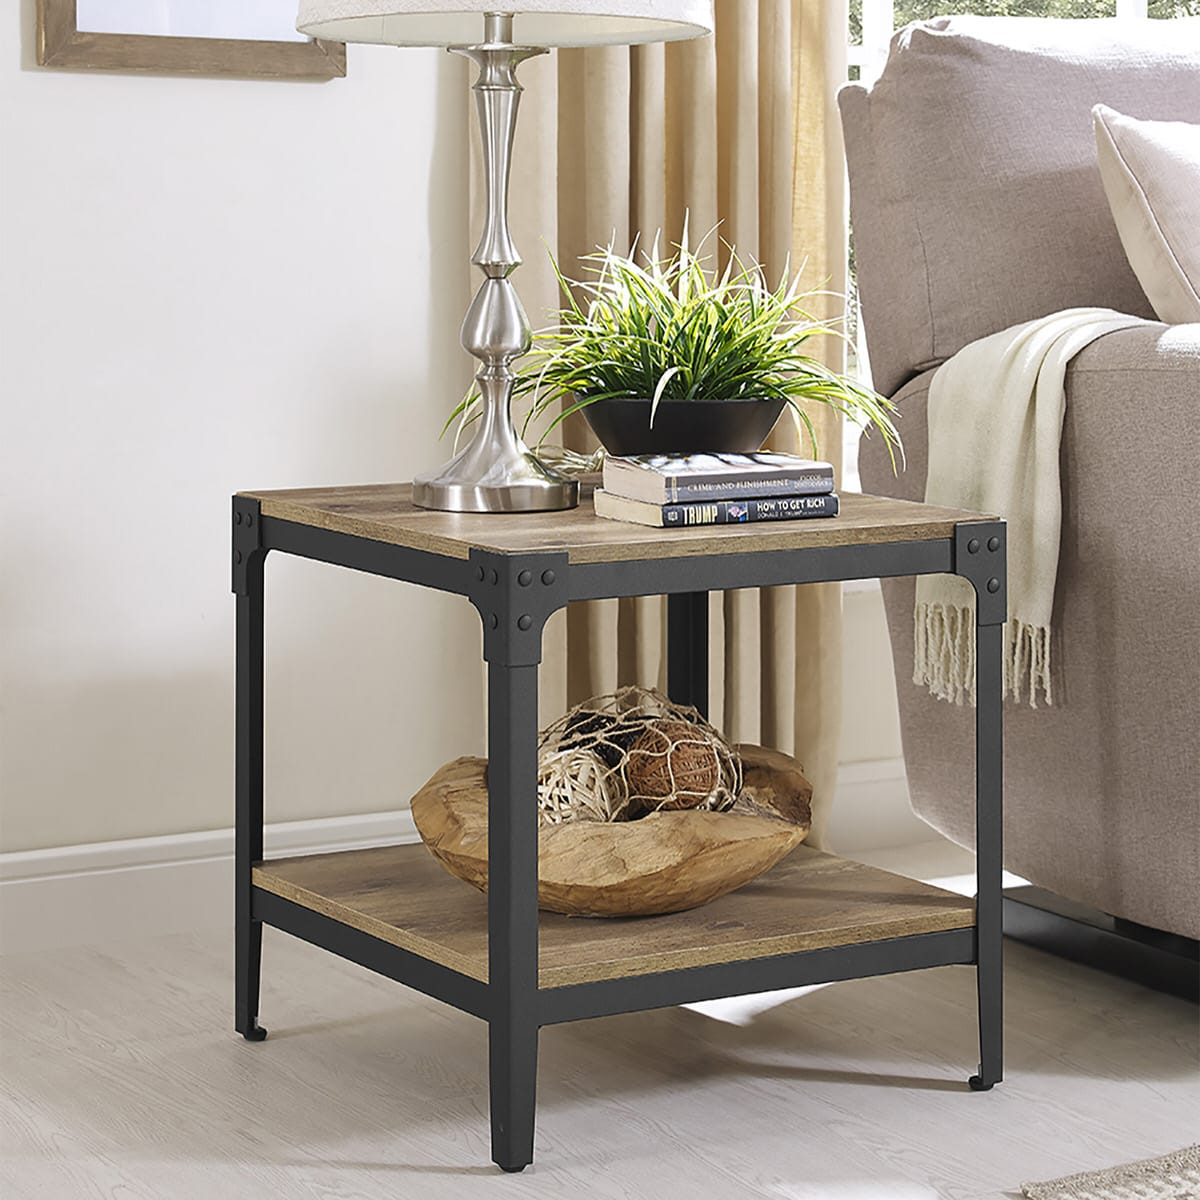 Strange Angle Iron Rustic Wood End Table Set Of 2 Barnwood By Walker Edison Caraccident5 Cool Chair Designs And Ideas Caraccident5Info